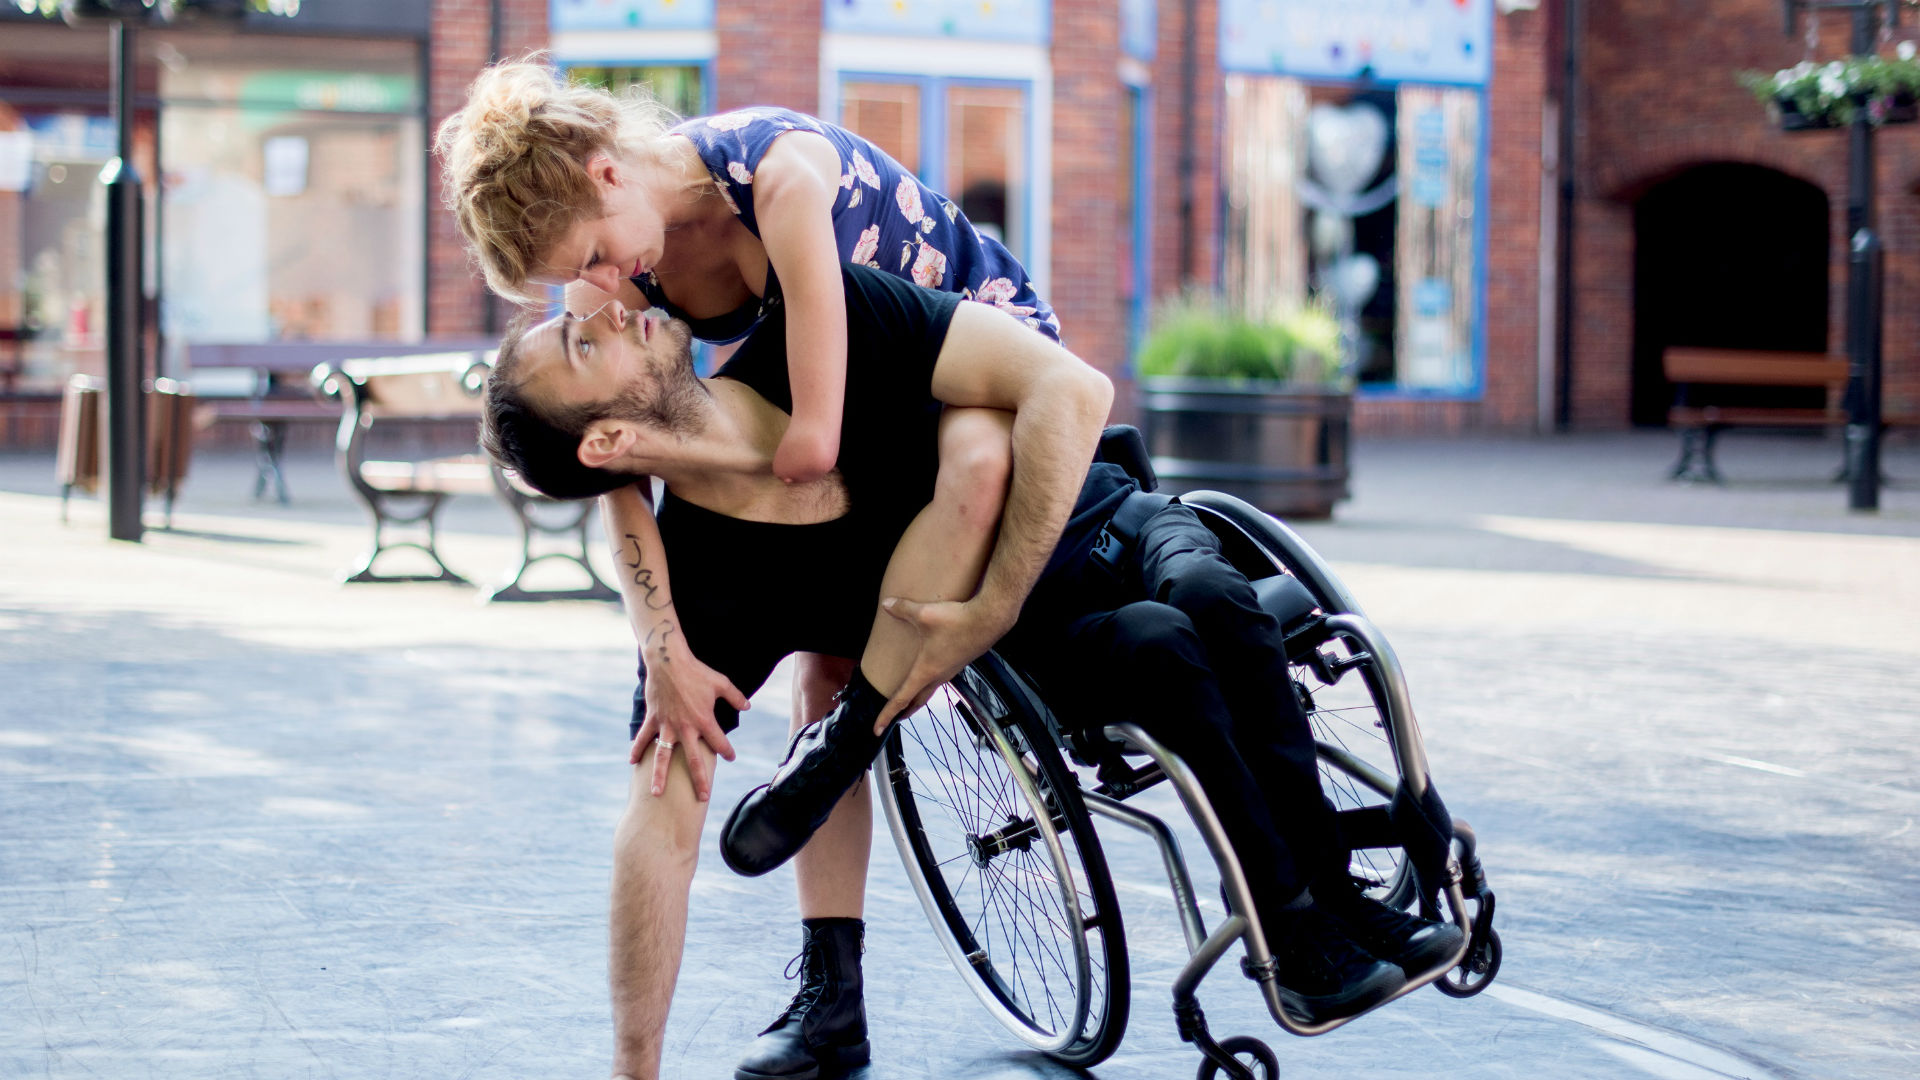 A photo of a man on a wheelchair and a woman dancing during the Liberty Festival.